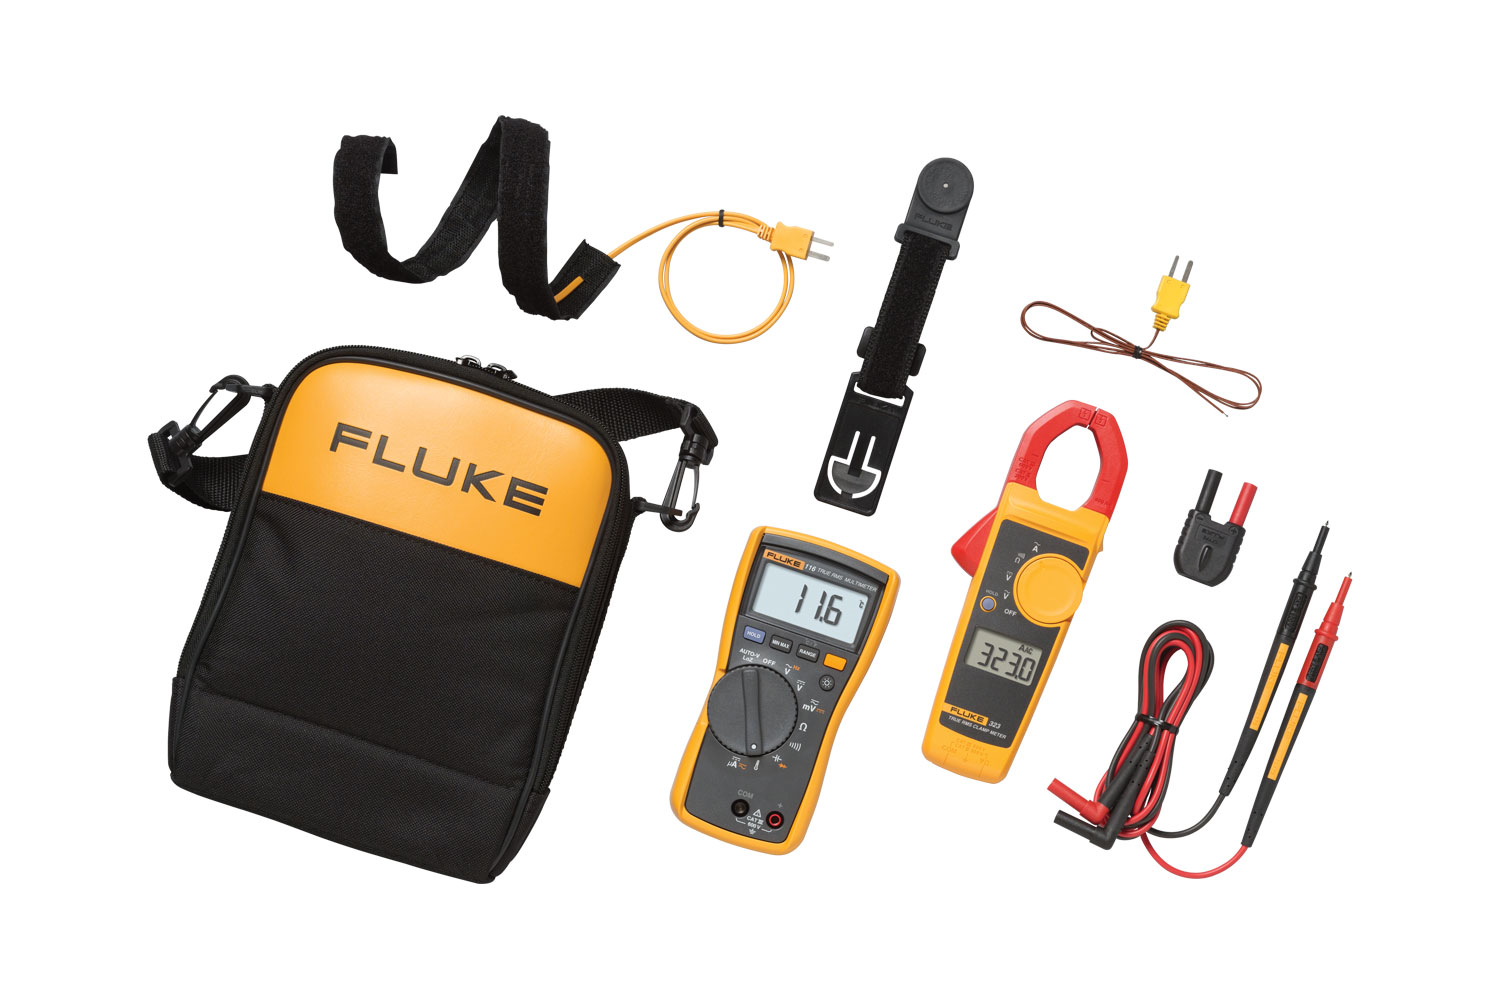 FLUKE 116-323 Kit - HVAC True RMS Multimeter and Clamp Meter Combo Kit